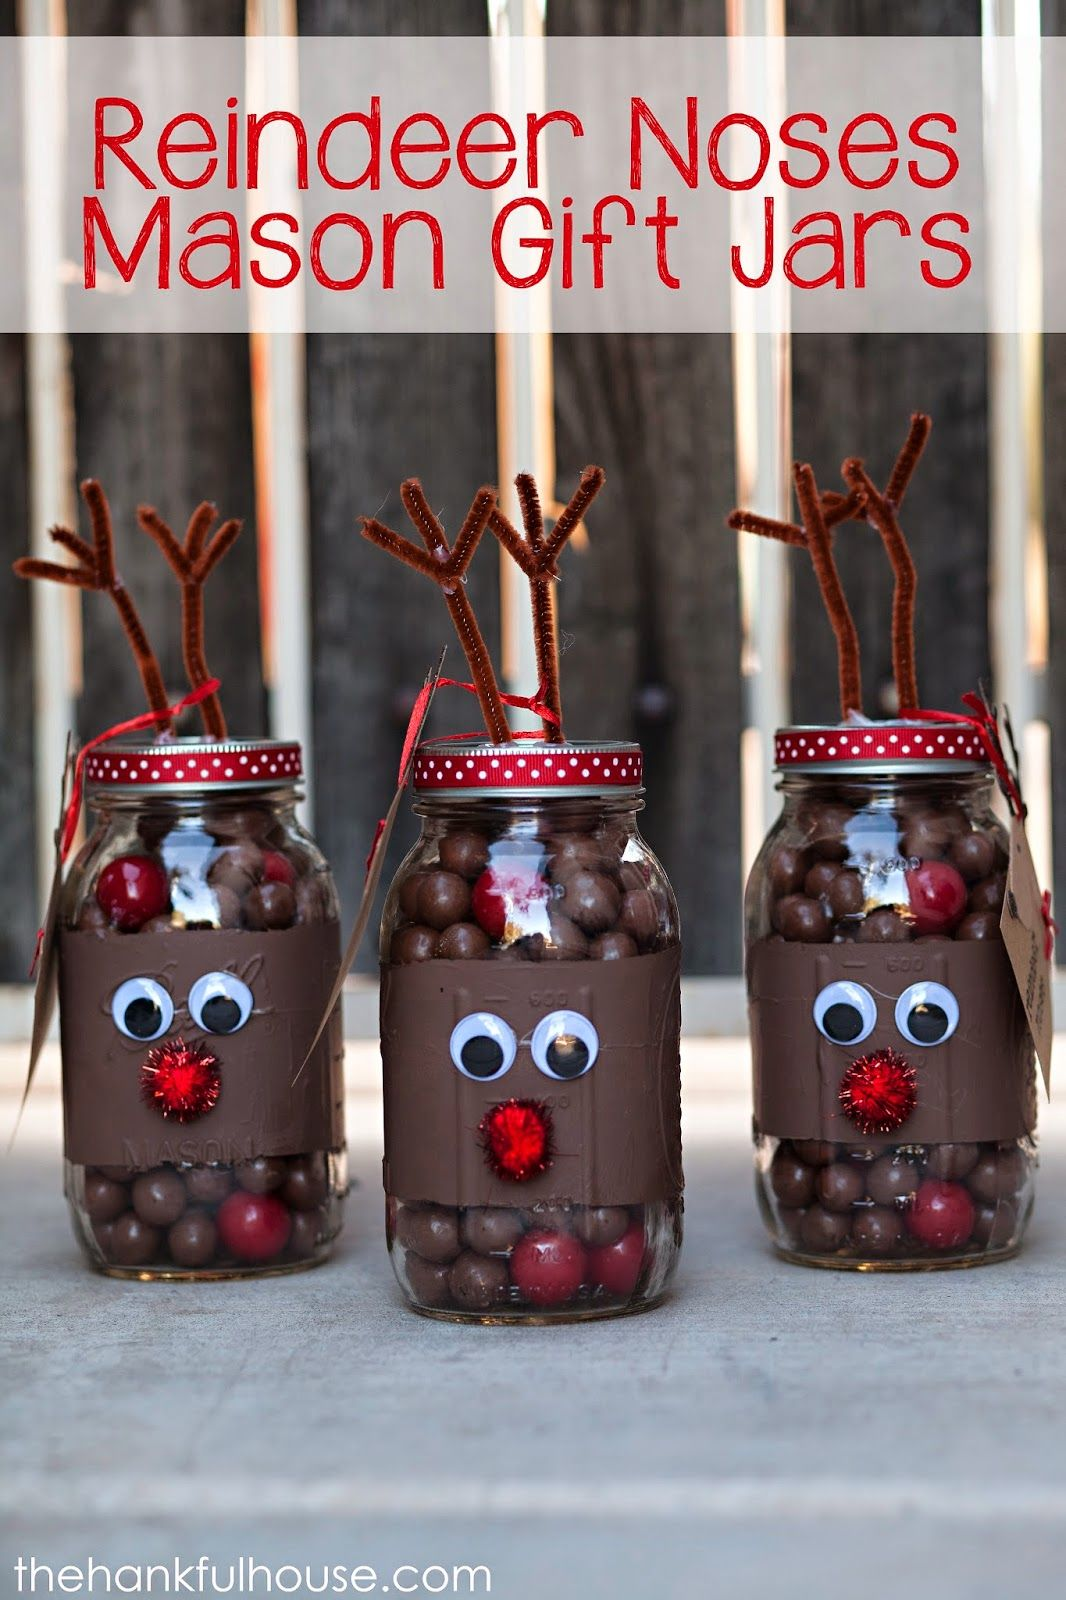 40 Mason Jar Crafts Ideas To Make Sell Mason Gifts Christmas Jars Christmas Mason Jars